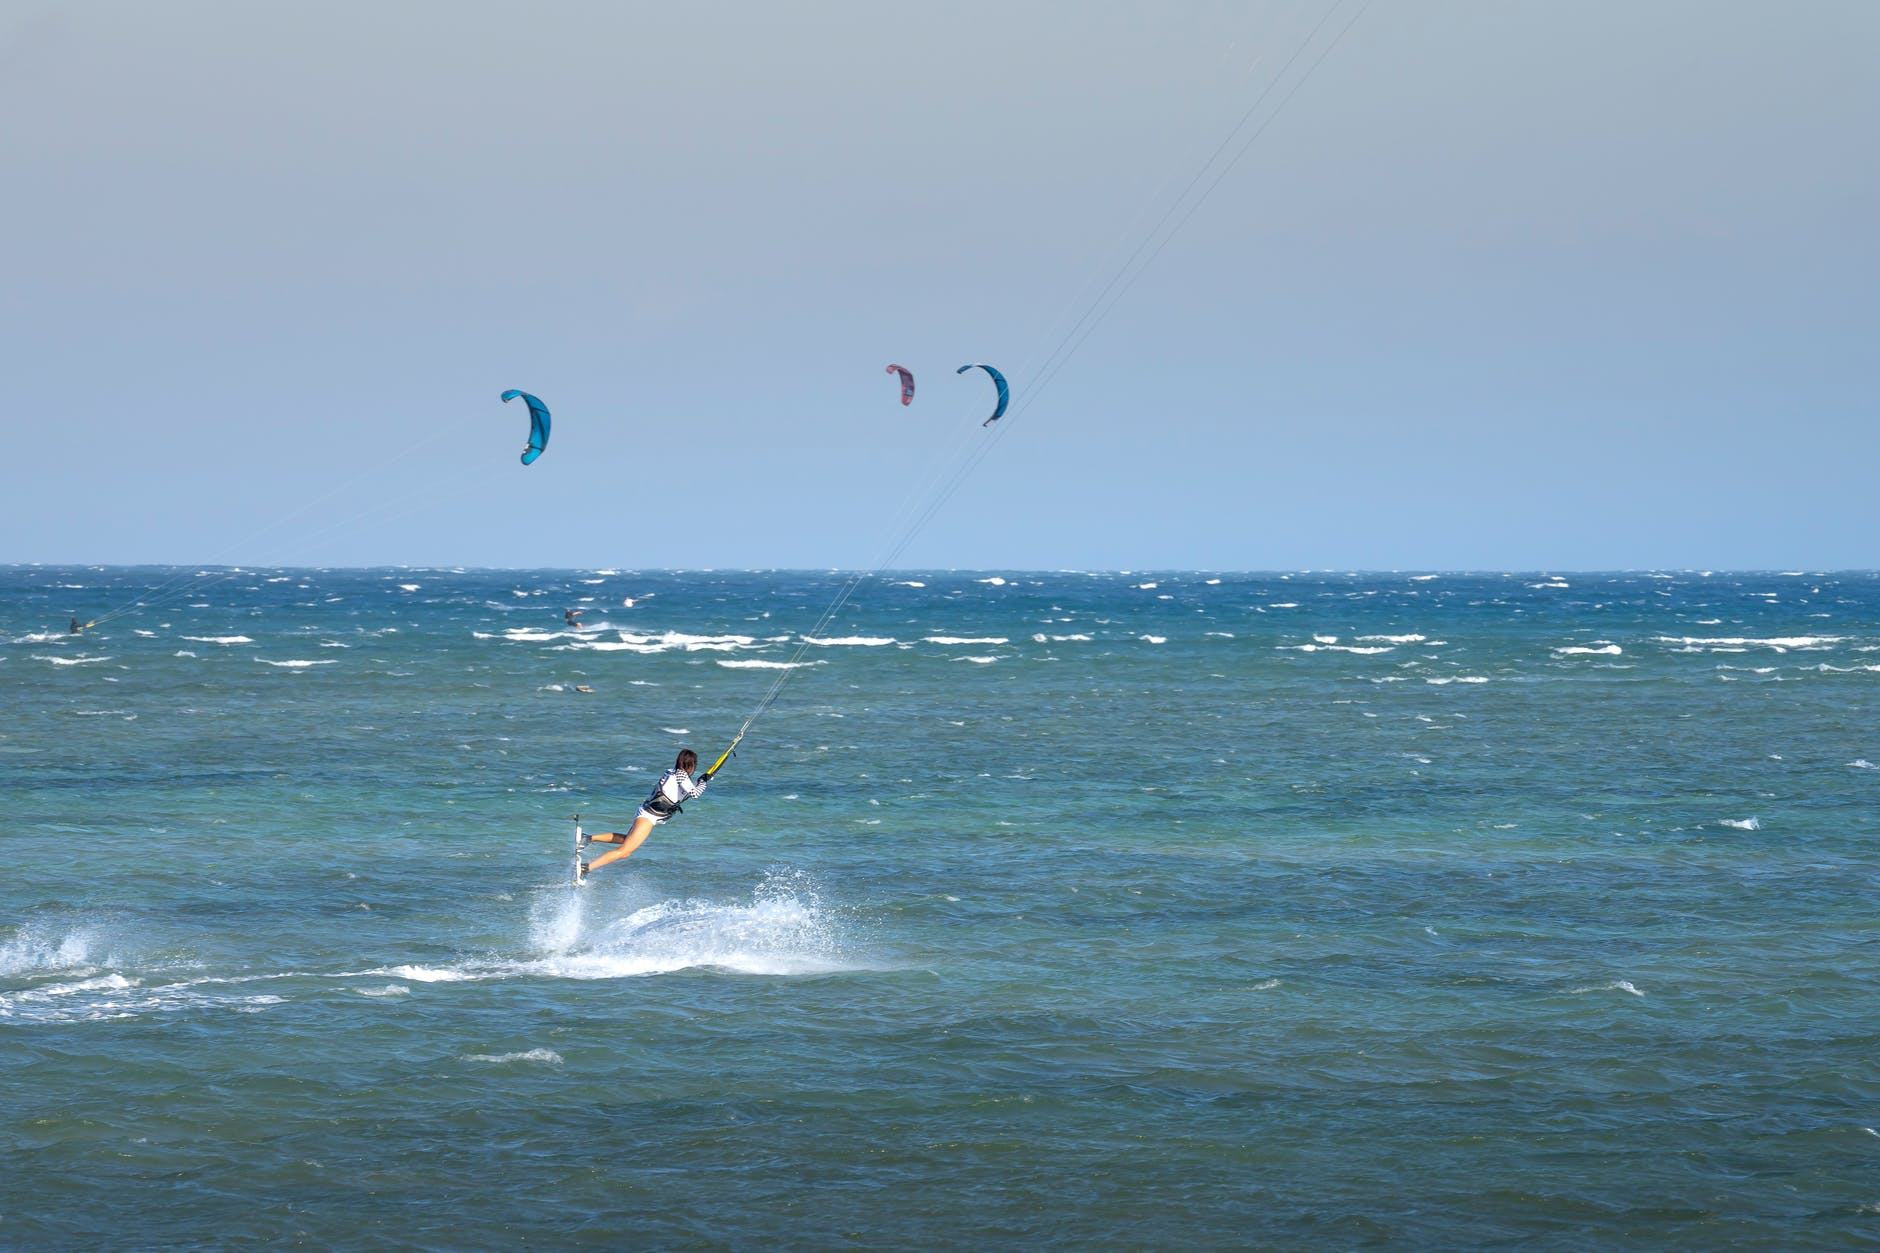 A kite surfer getting some air above the waves